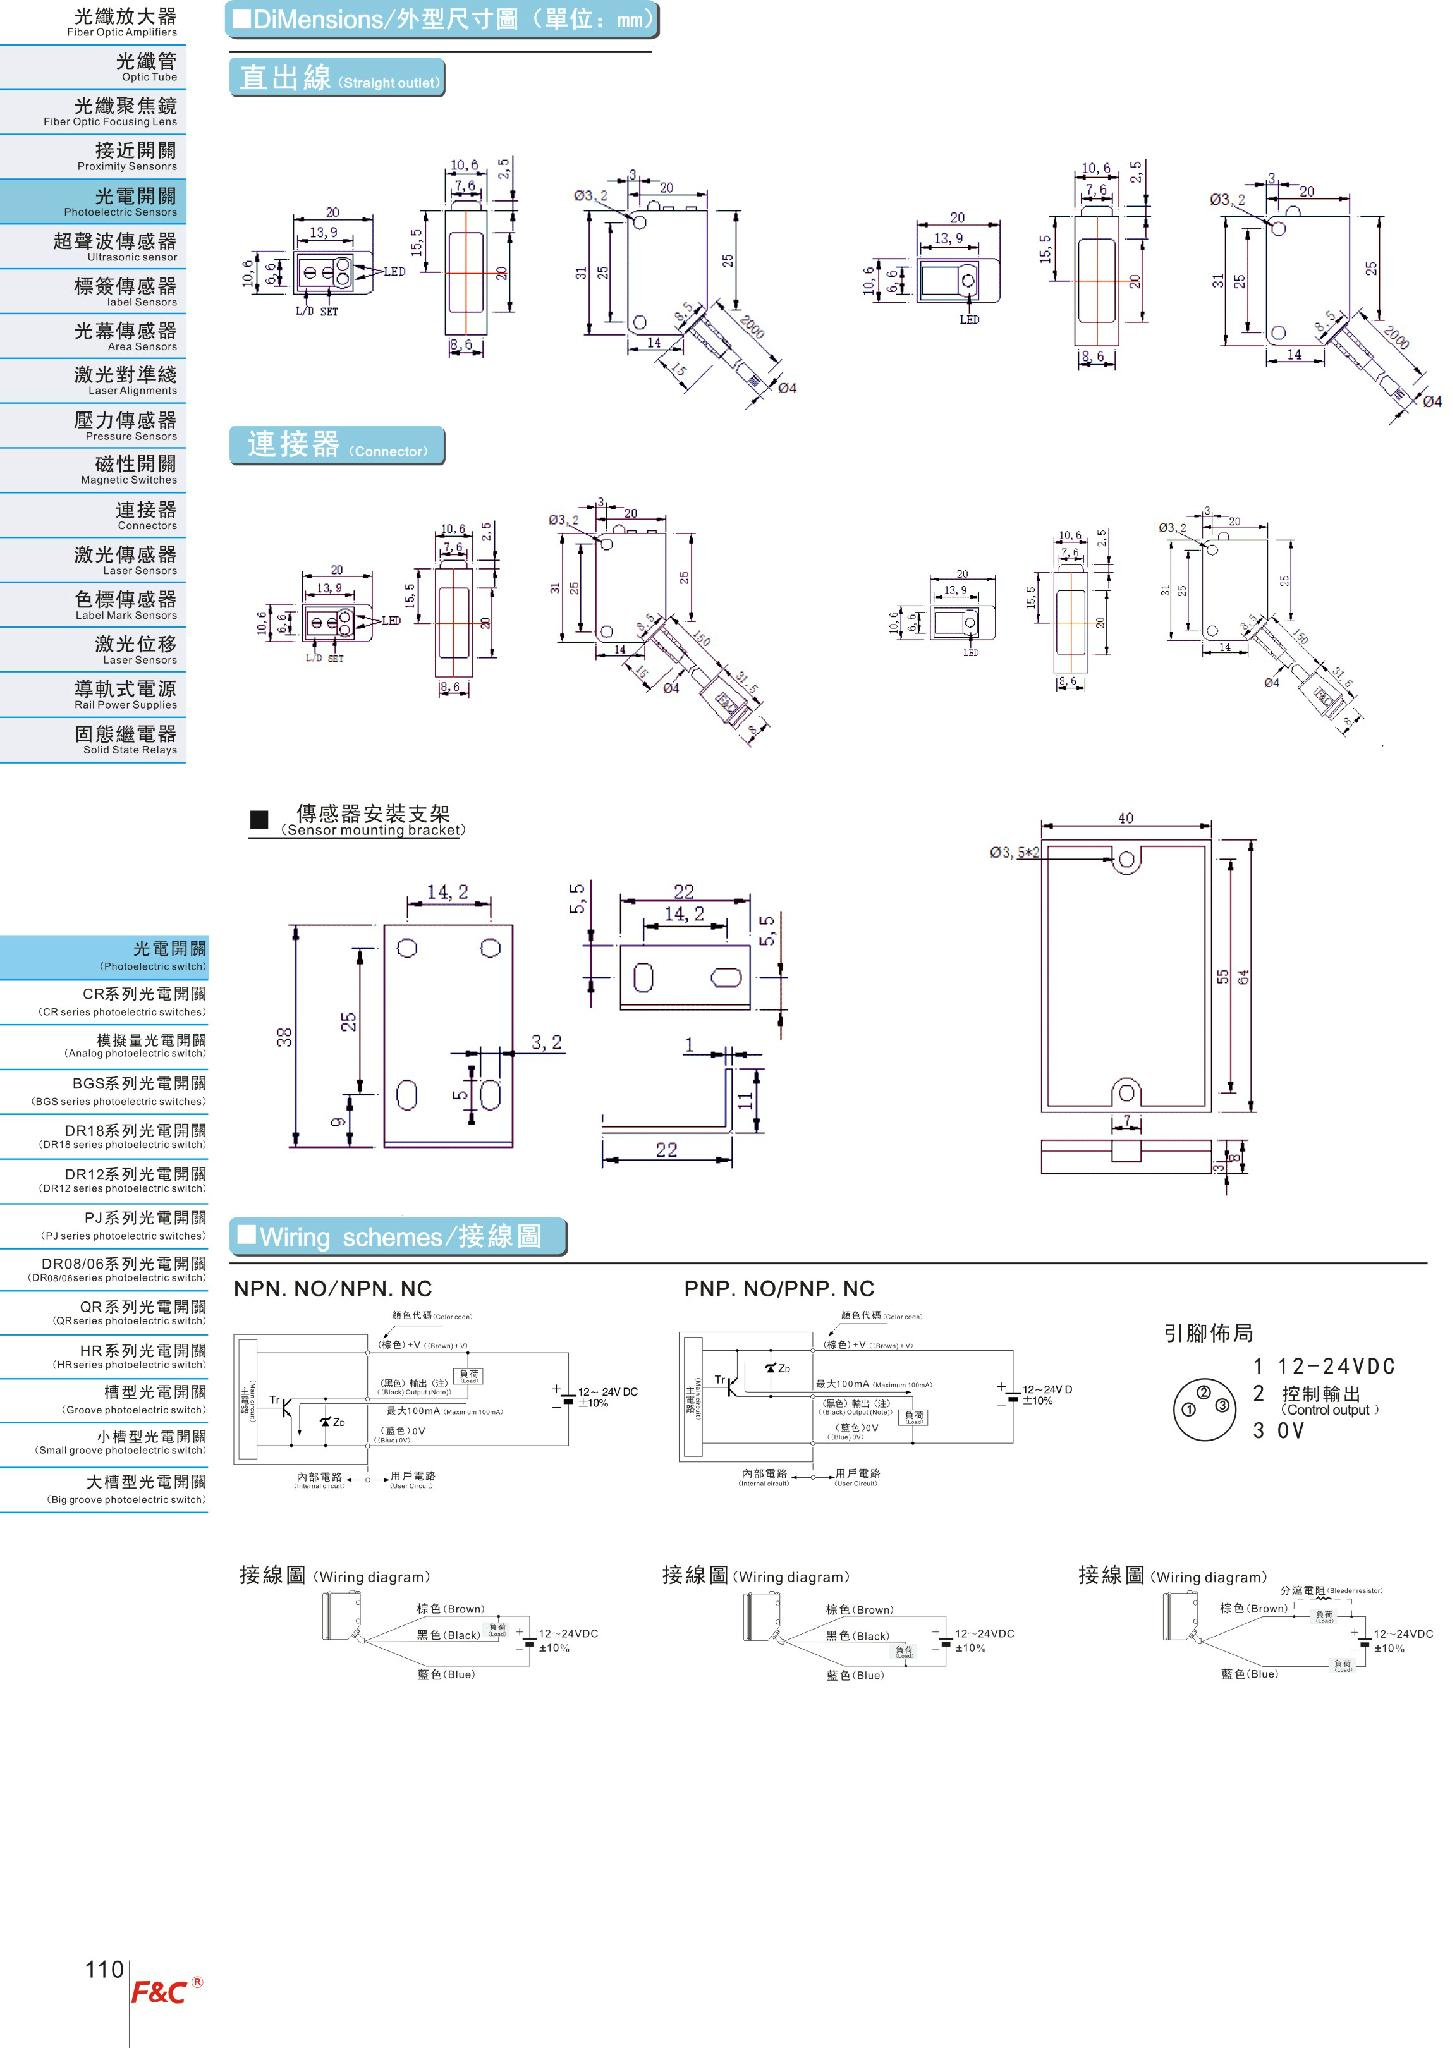 Photoelectric Switch Schematic Wiring Diagram Photocell Circuit Unique Composition Photo Cell E3jm